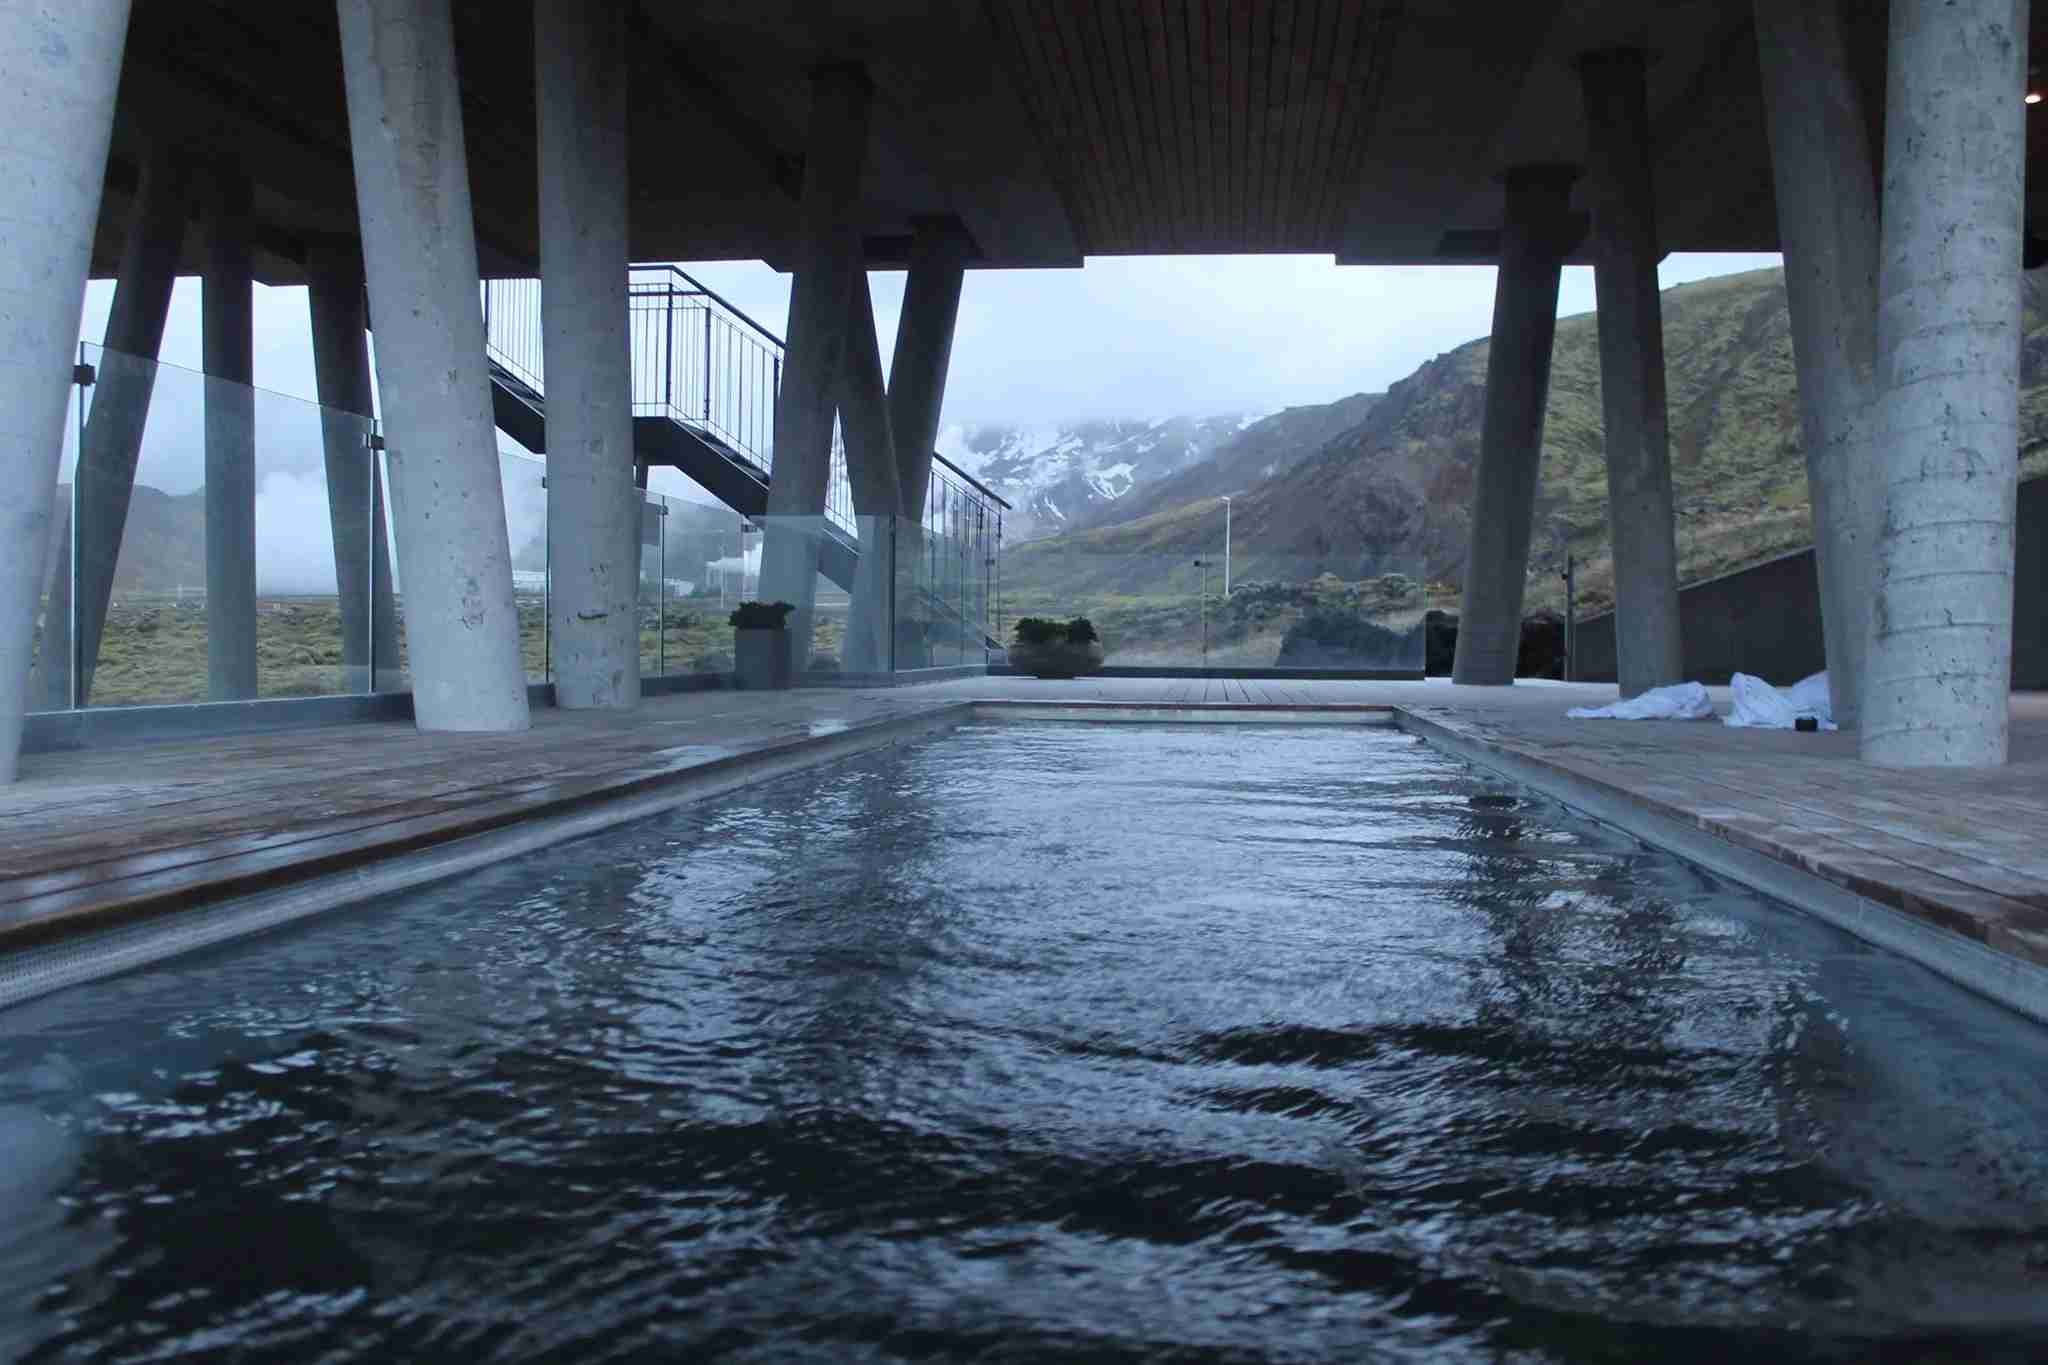 The geothermal pool at The Ion featured incredible views of nearby mountains and a geothermal power plant.